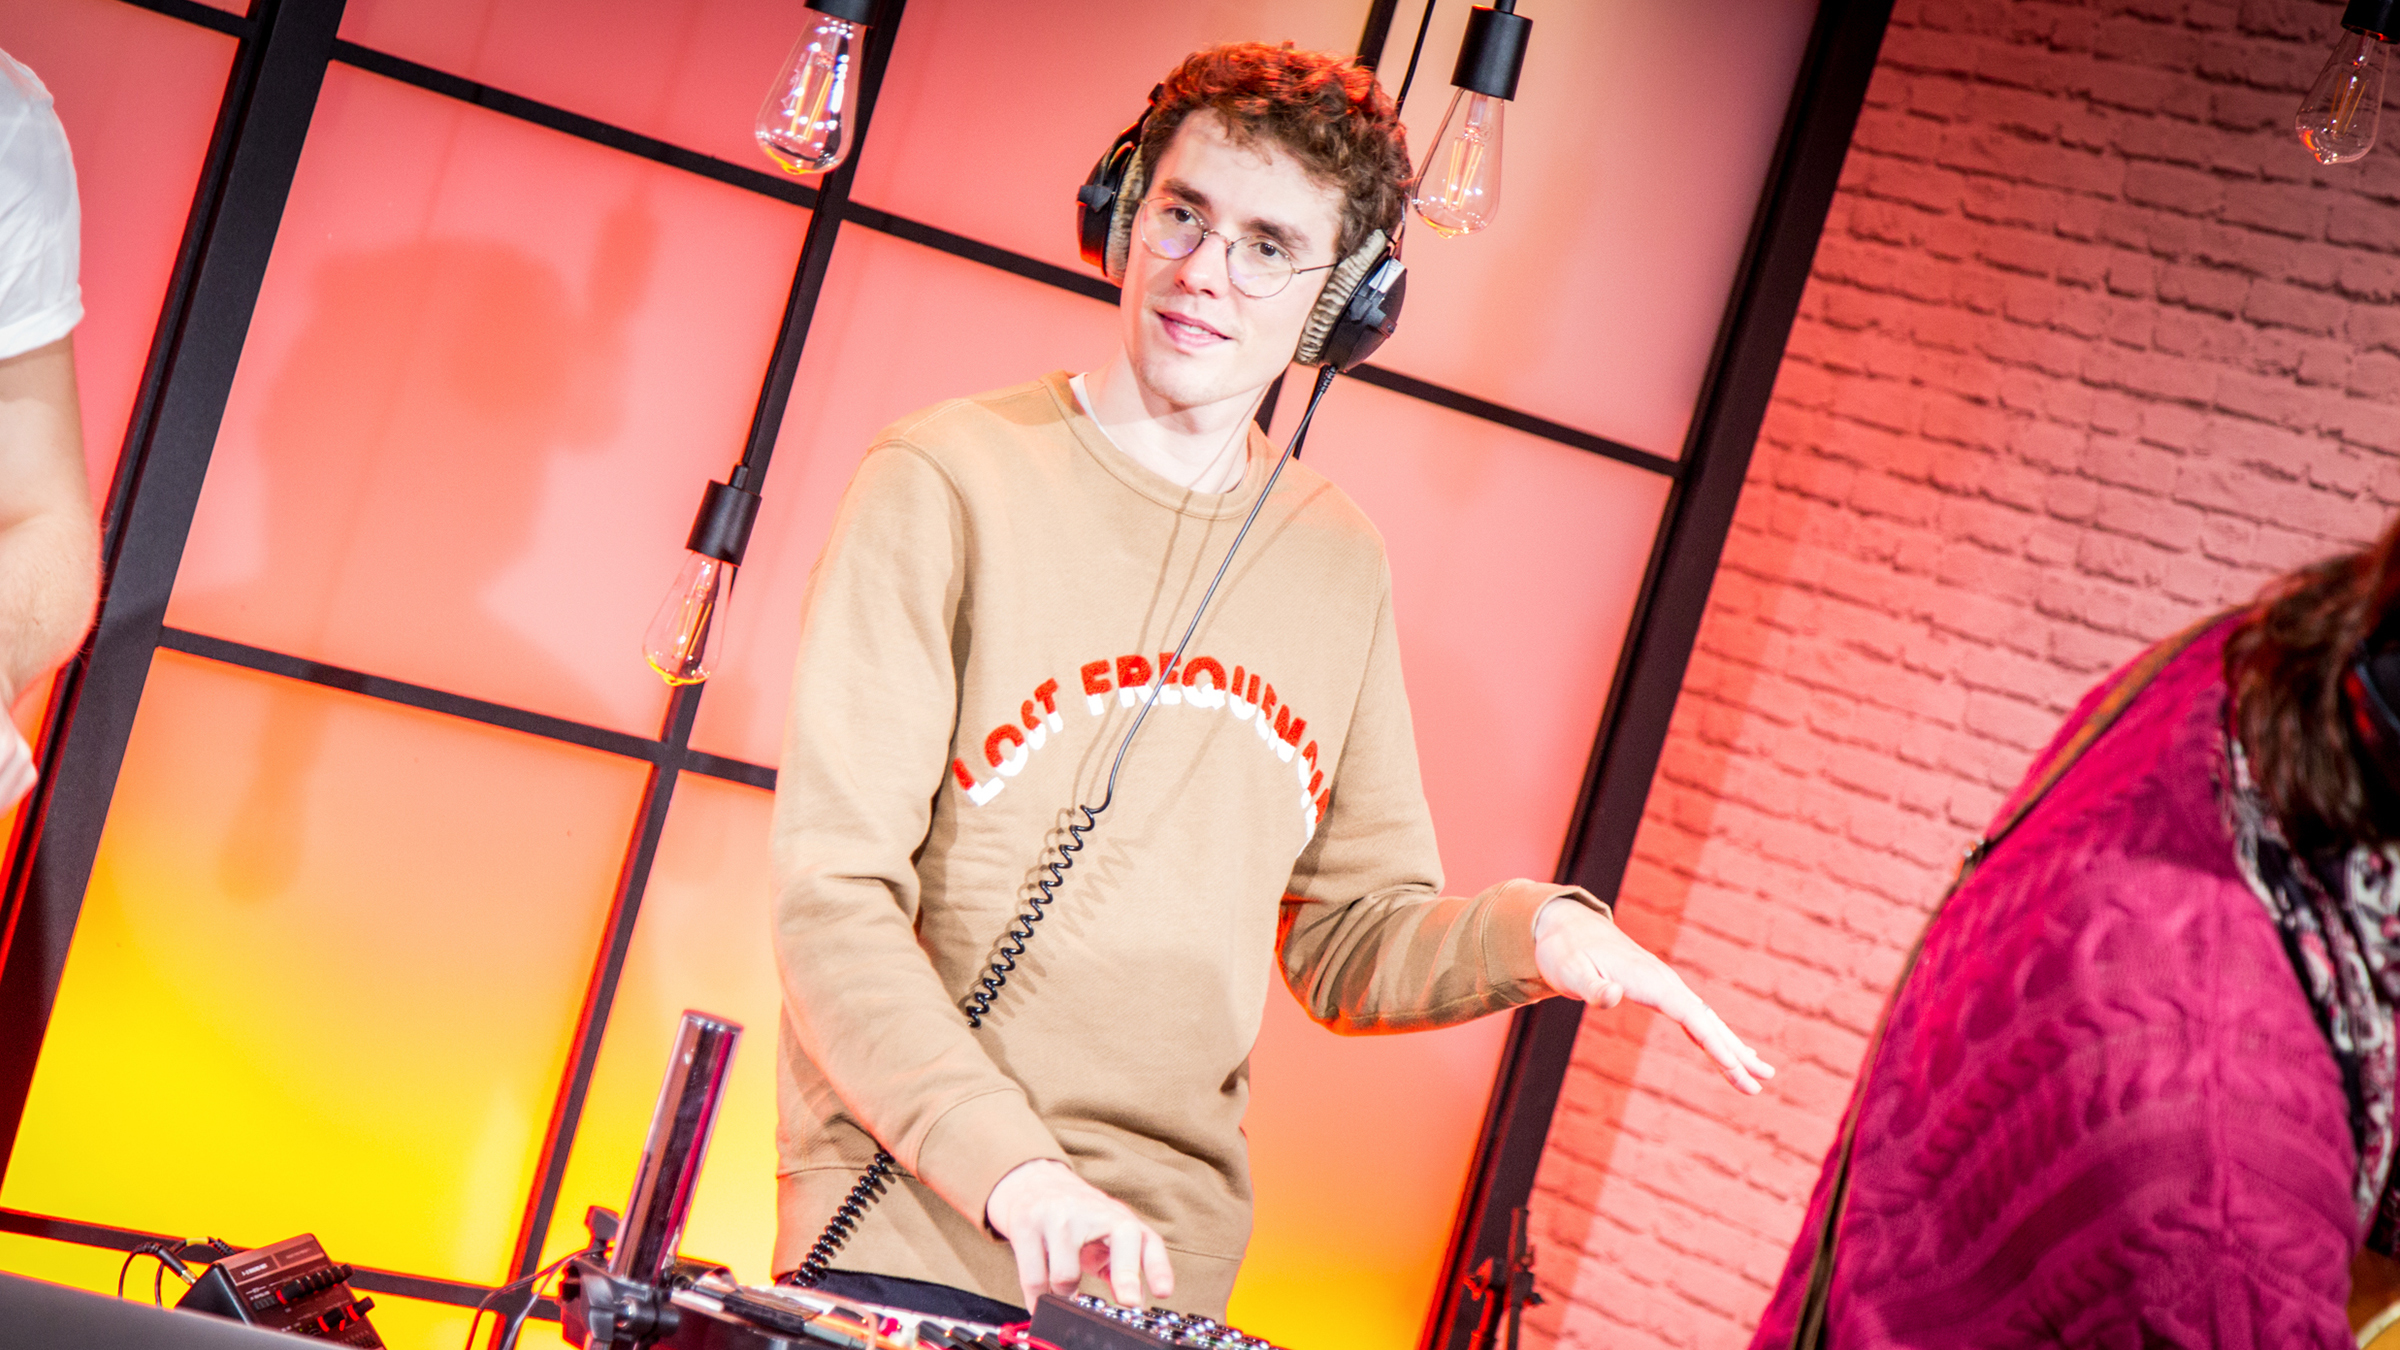 Lostfrequencies2402